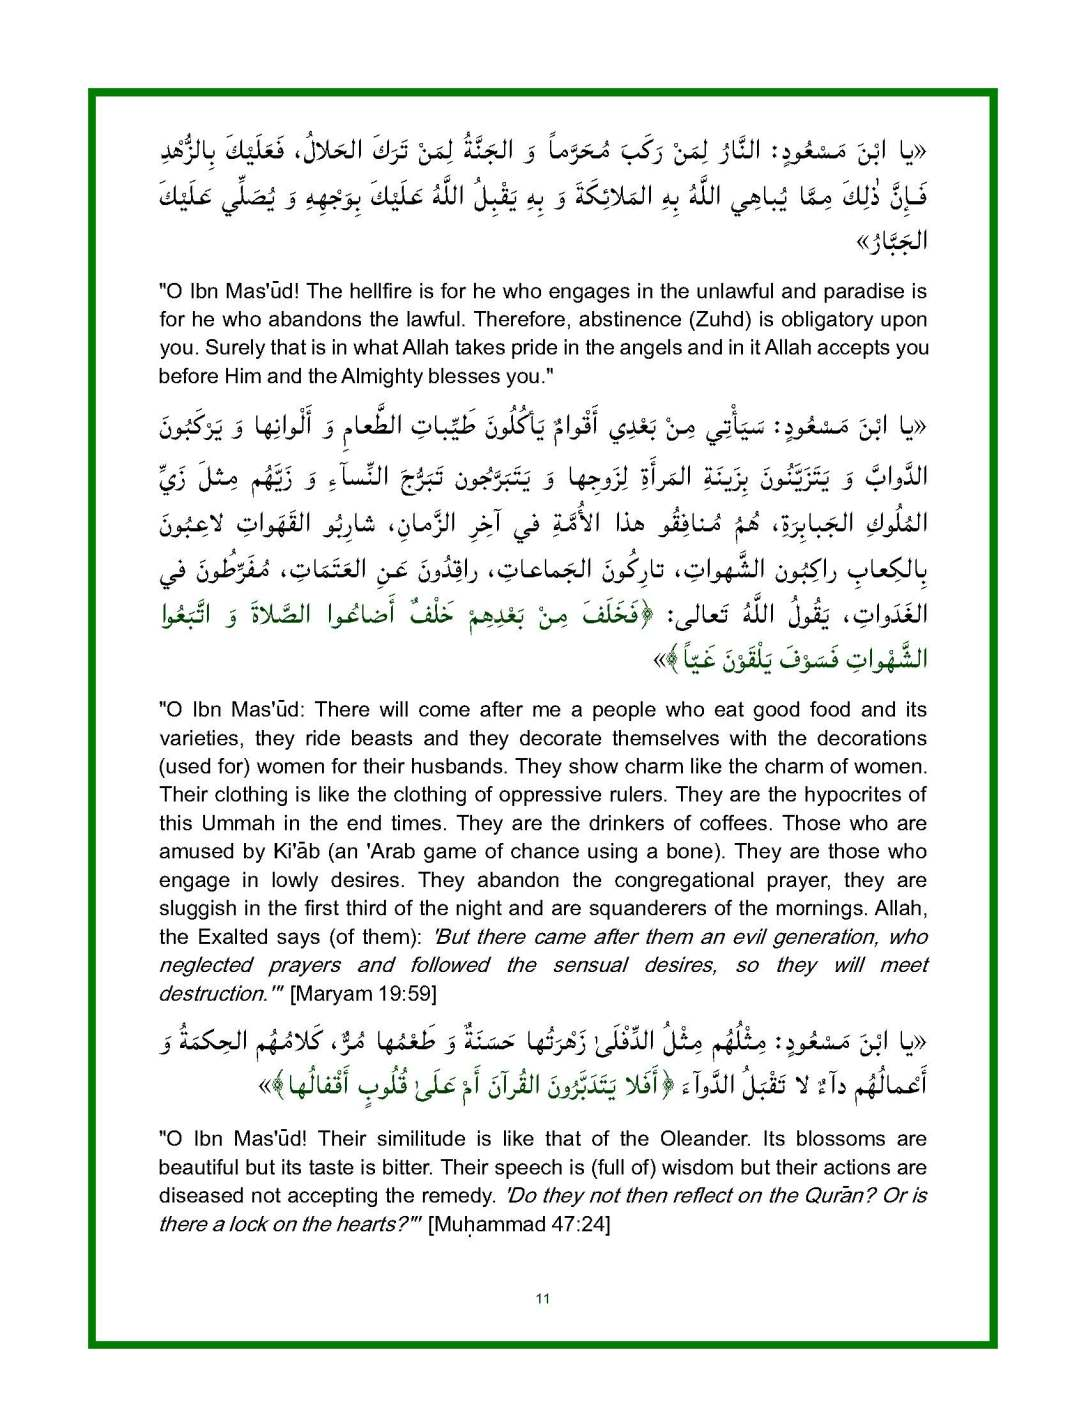 Spiritual-Advice-of-the-Messenger-of-Allah-for-Ibn-Masud-unlocked_Page_11